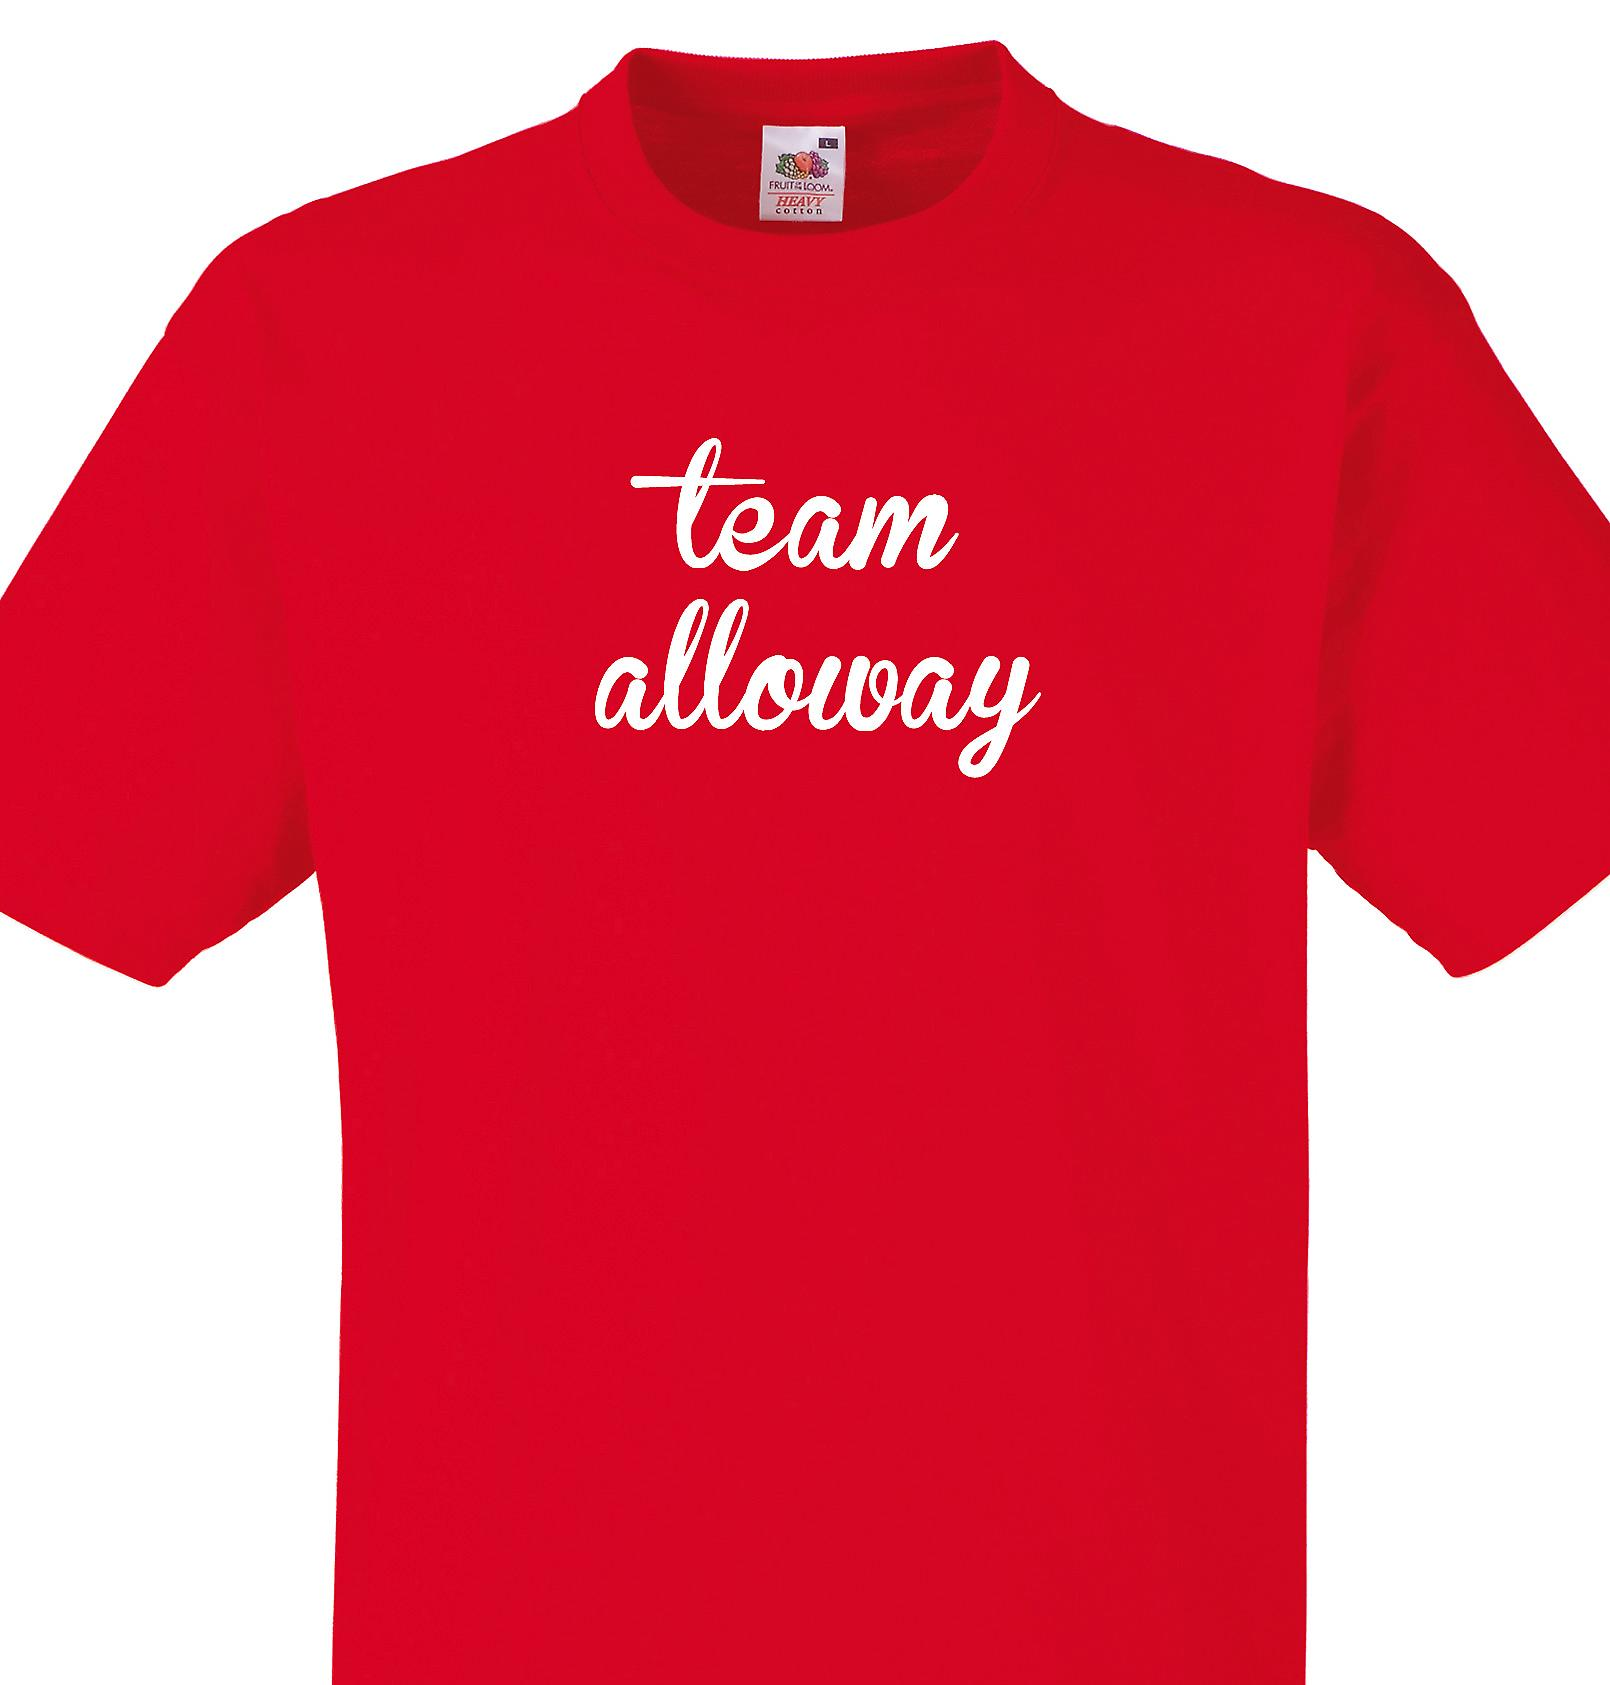 Team Alloway Red T shirt